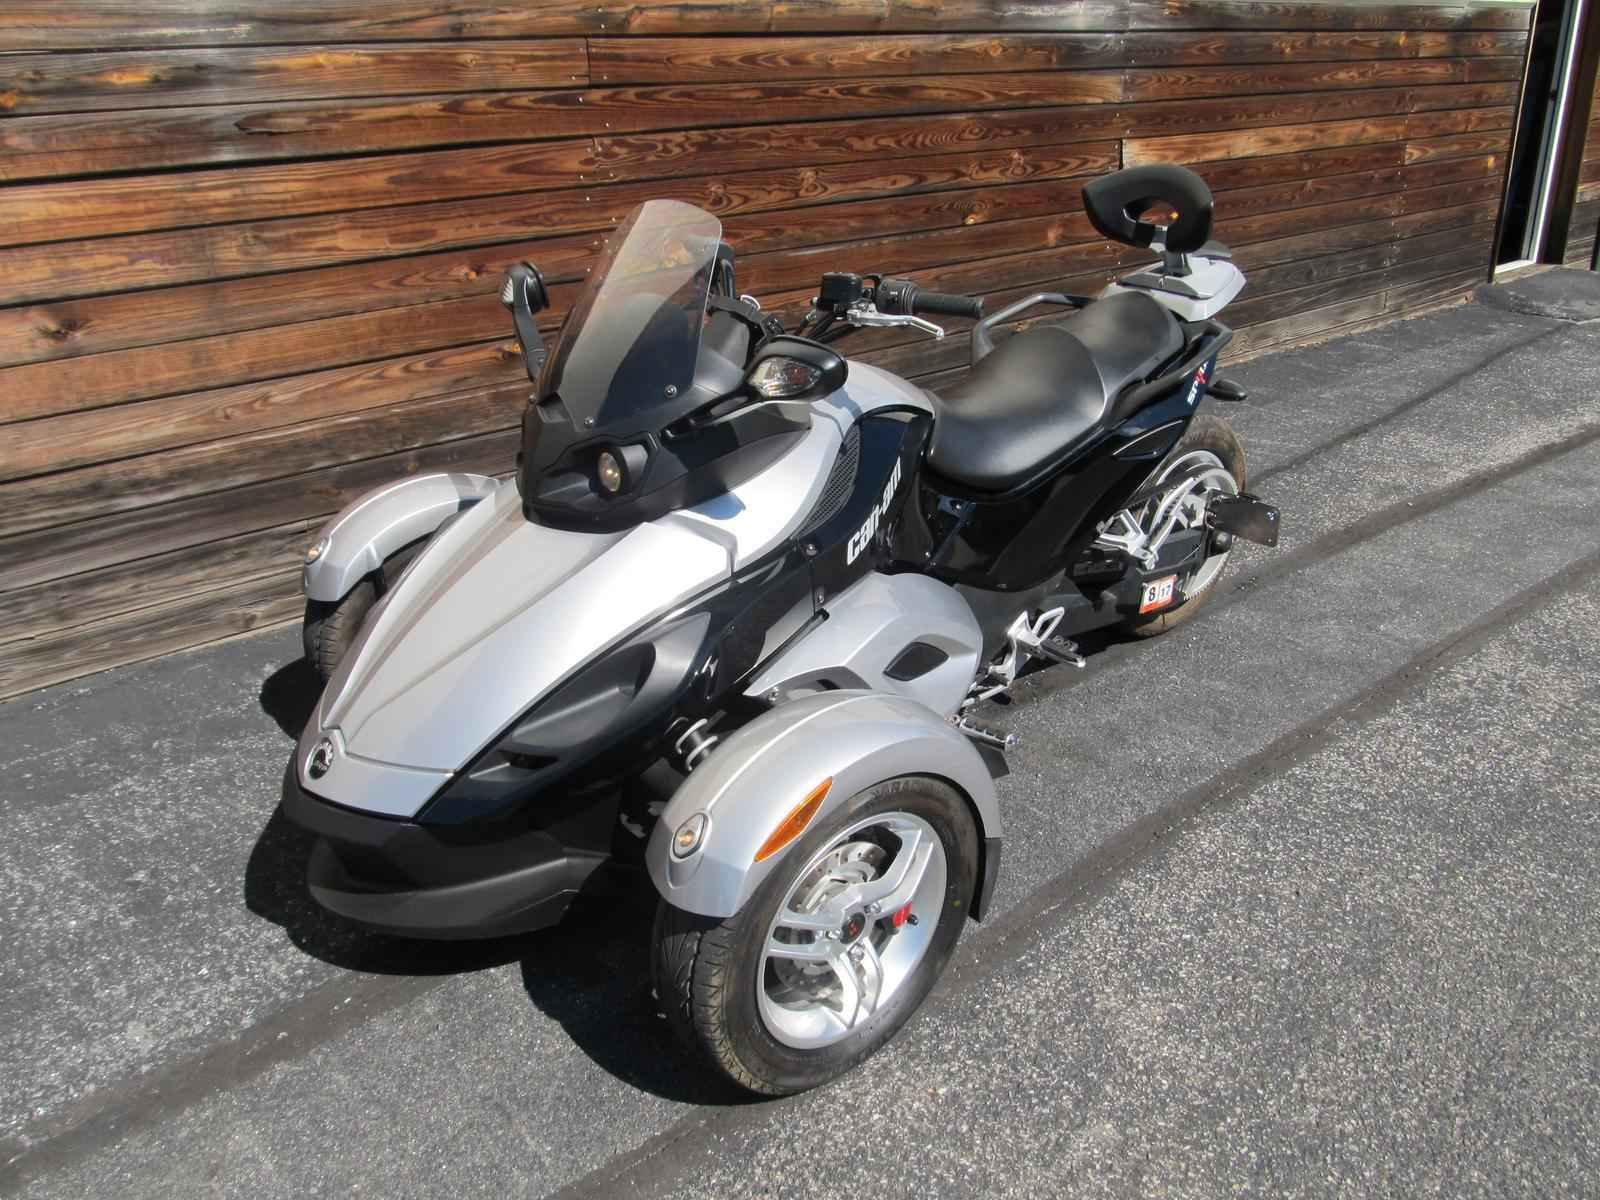 Used 2009 can am spyder sm5 motorcycles for sale in virginia va 2009